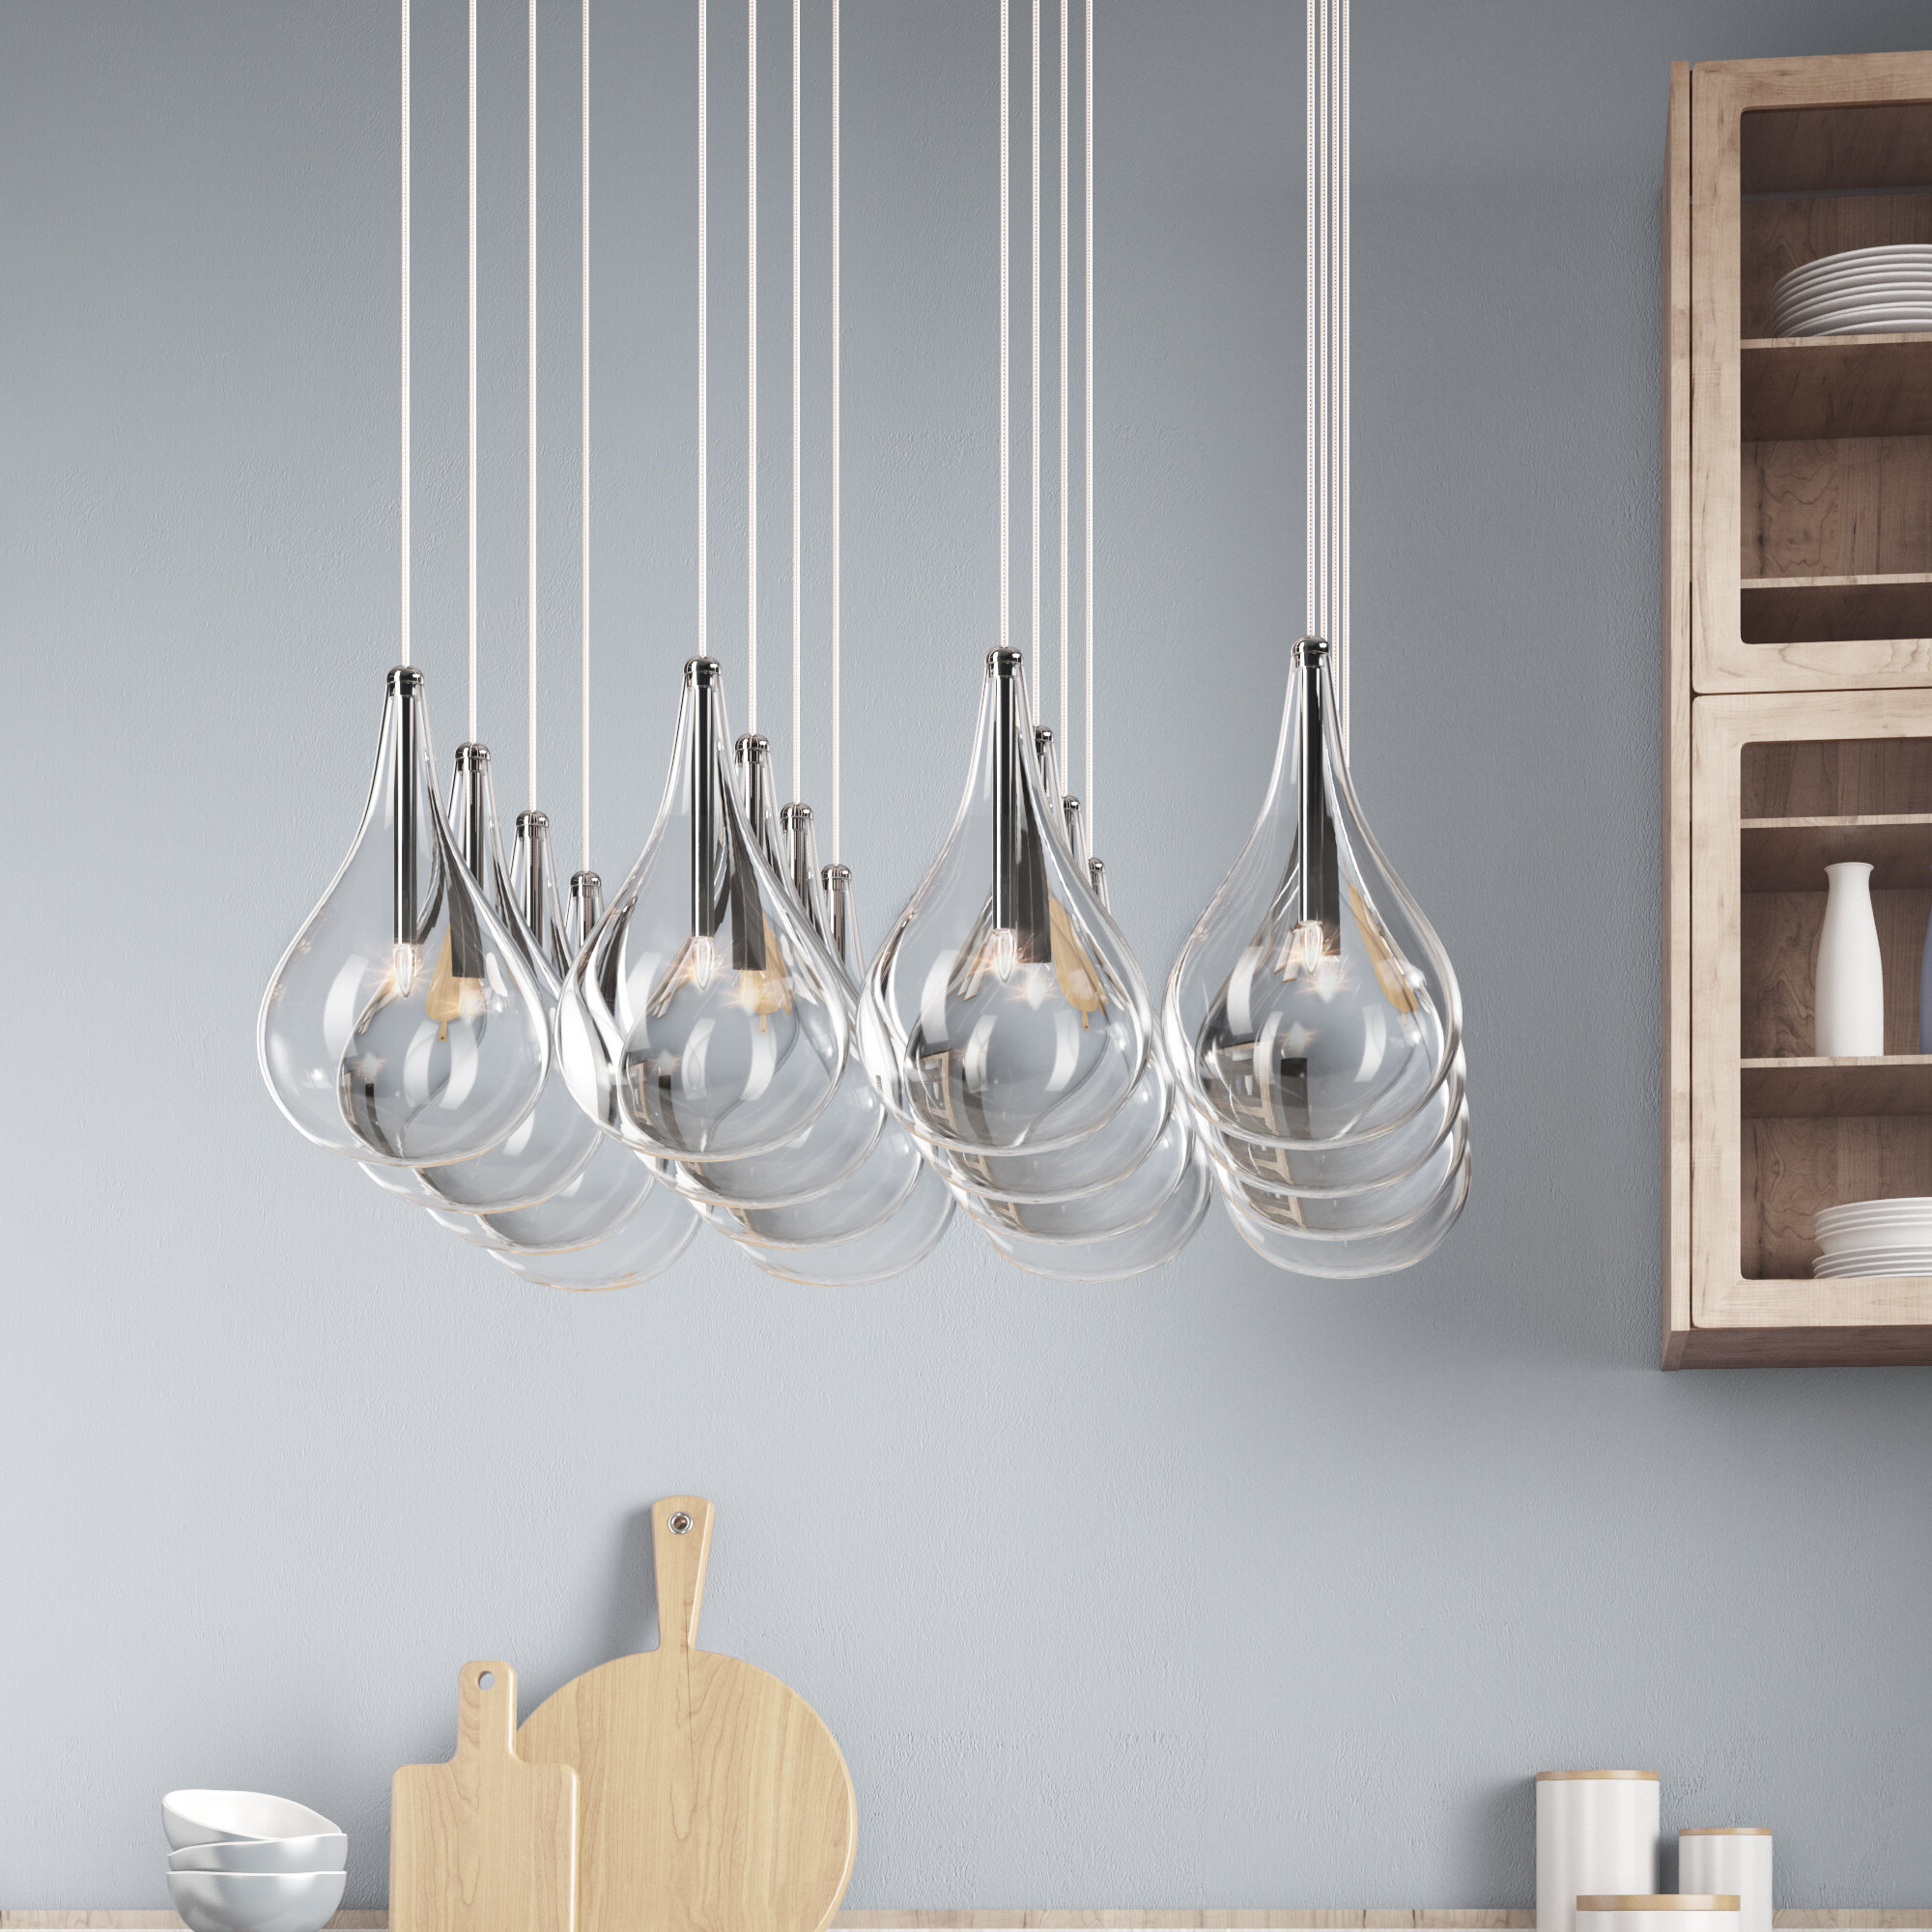 Most Current Wade Logan Neal 16 Light Kitchen Island Pendant & Reviews Pertaining To Neal 9 Light Kitchen Island Teardrop Pendants (View 10 of 20)